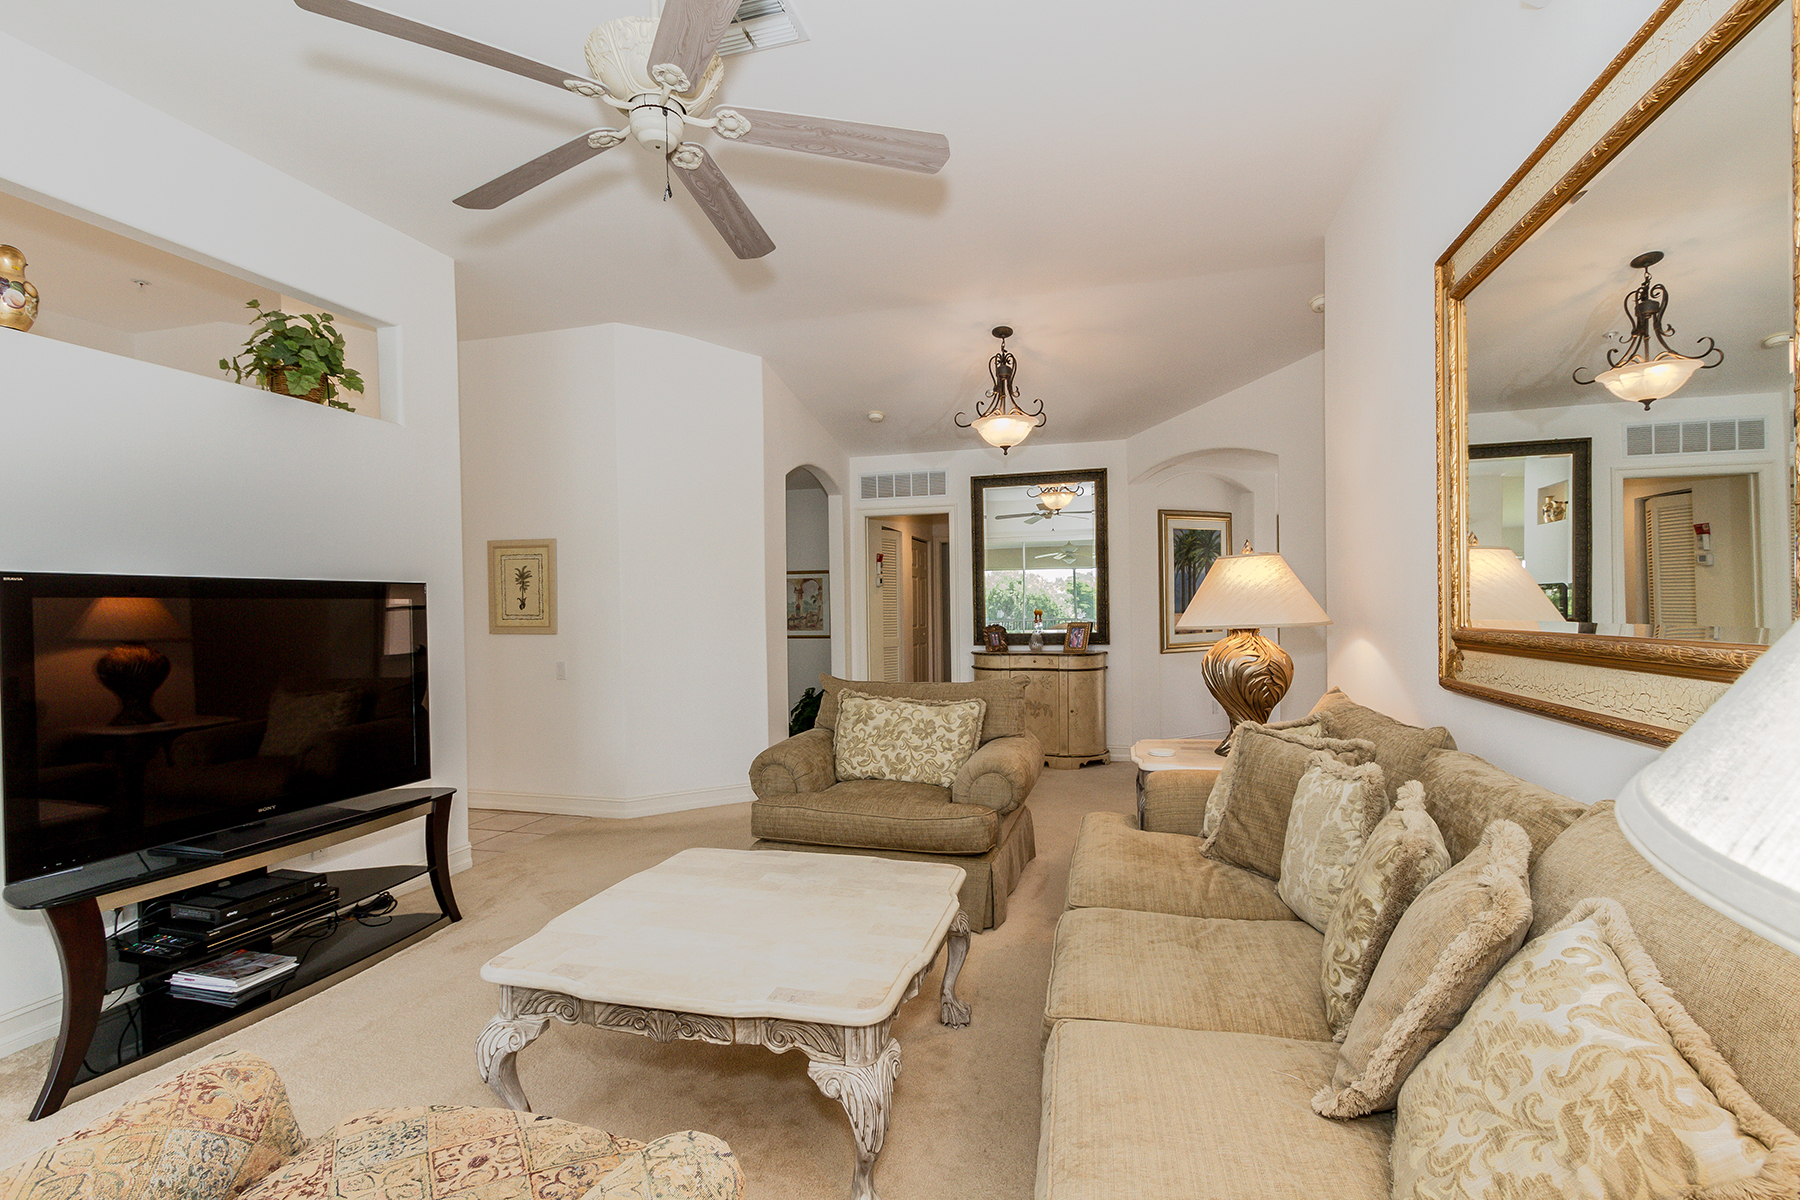 Single Family Home for Rent at TARPON COVE - BARBADOS 866 Carrick Bend Cir 202, Naples, Florida 34110 United States